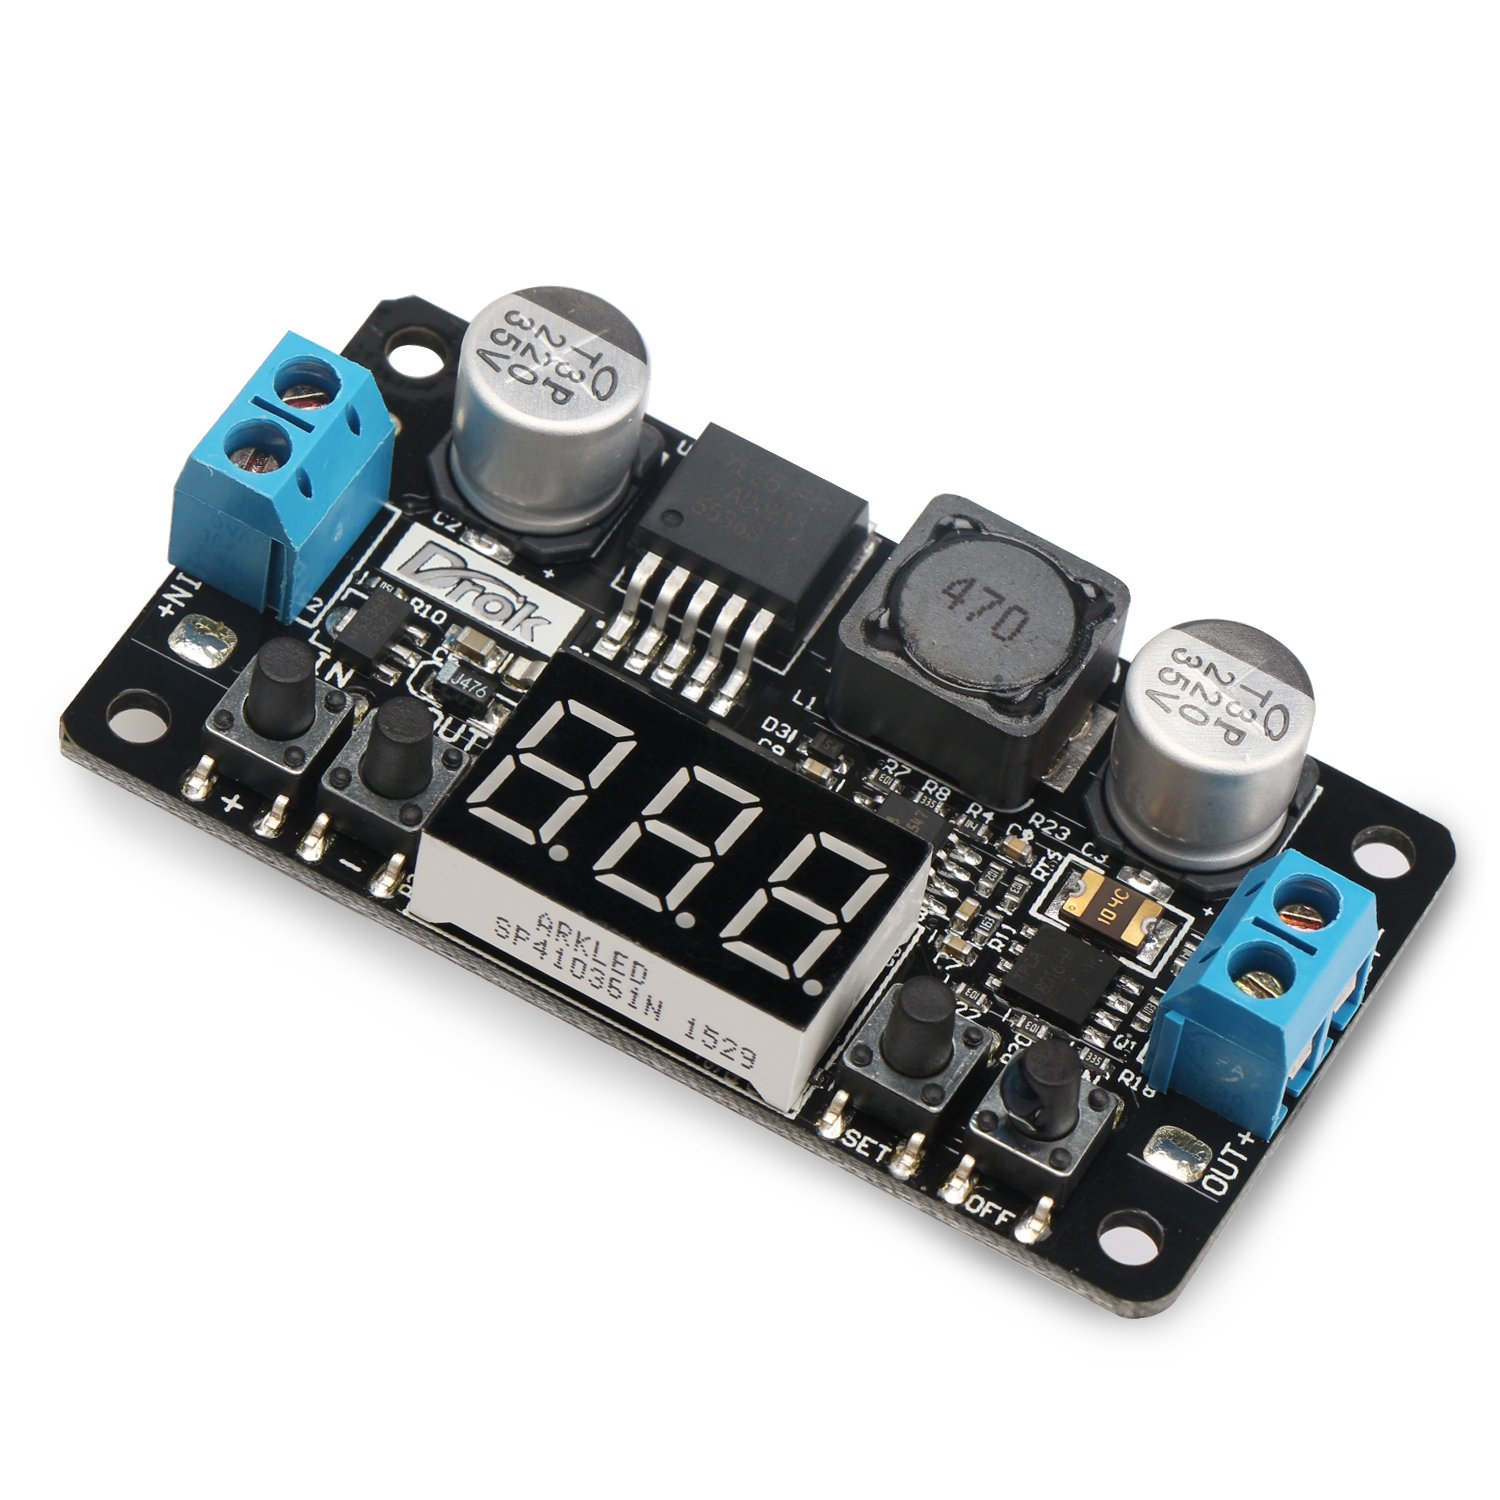 Drok Converter Buck Adjustable Lm2596 With 12 V Digital Voltmeter To 250v Circuit Diagram Electronic Project 4 40 125 37 Dc Power Supply Module Diy Tools